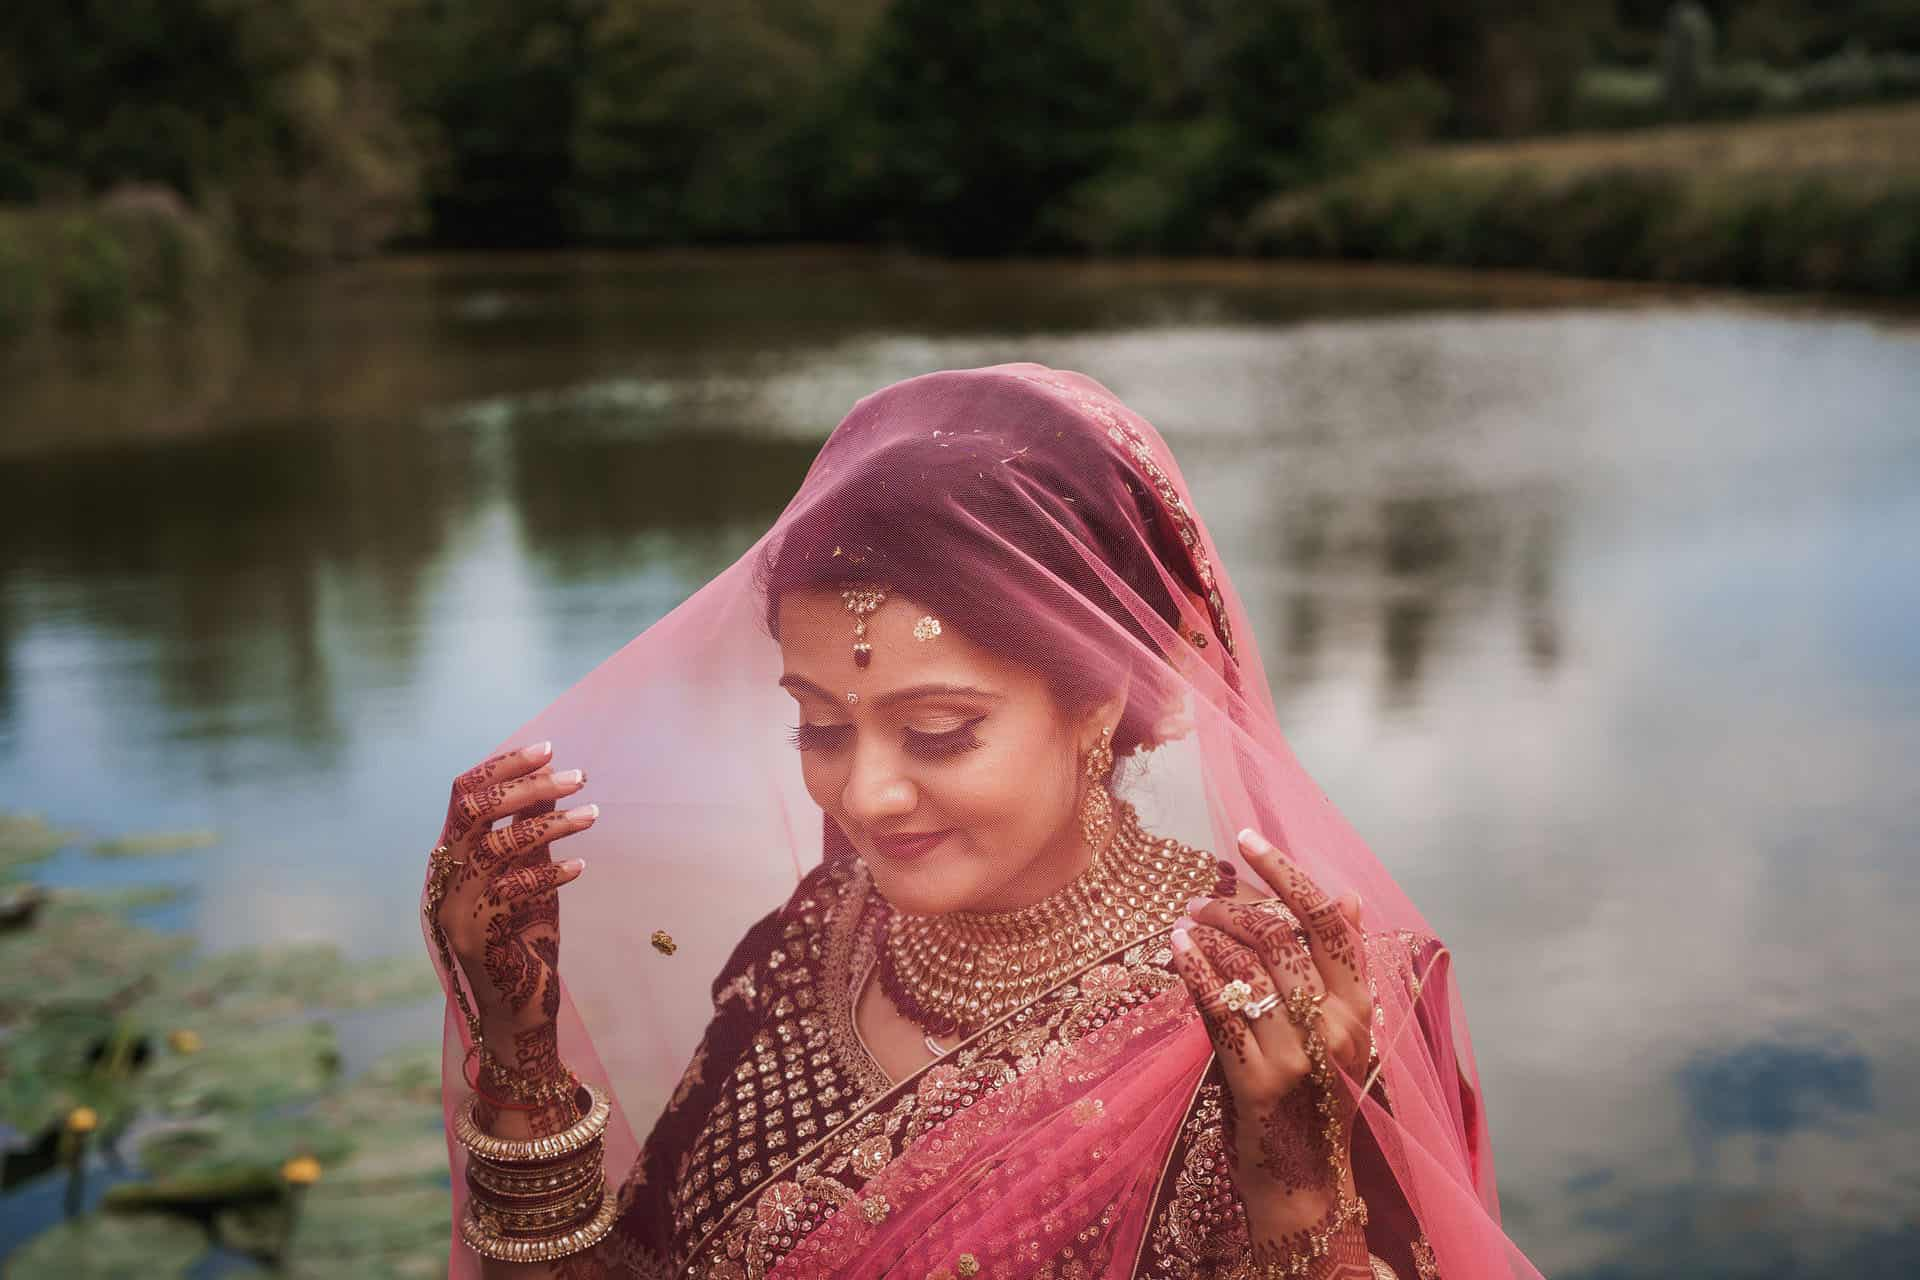 braxted park hindu wedding